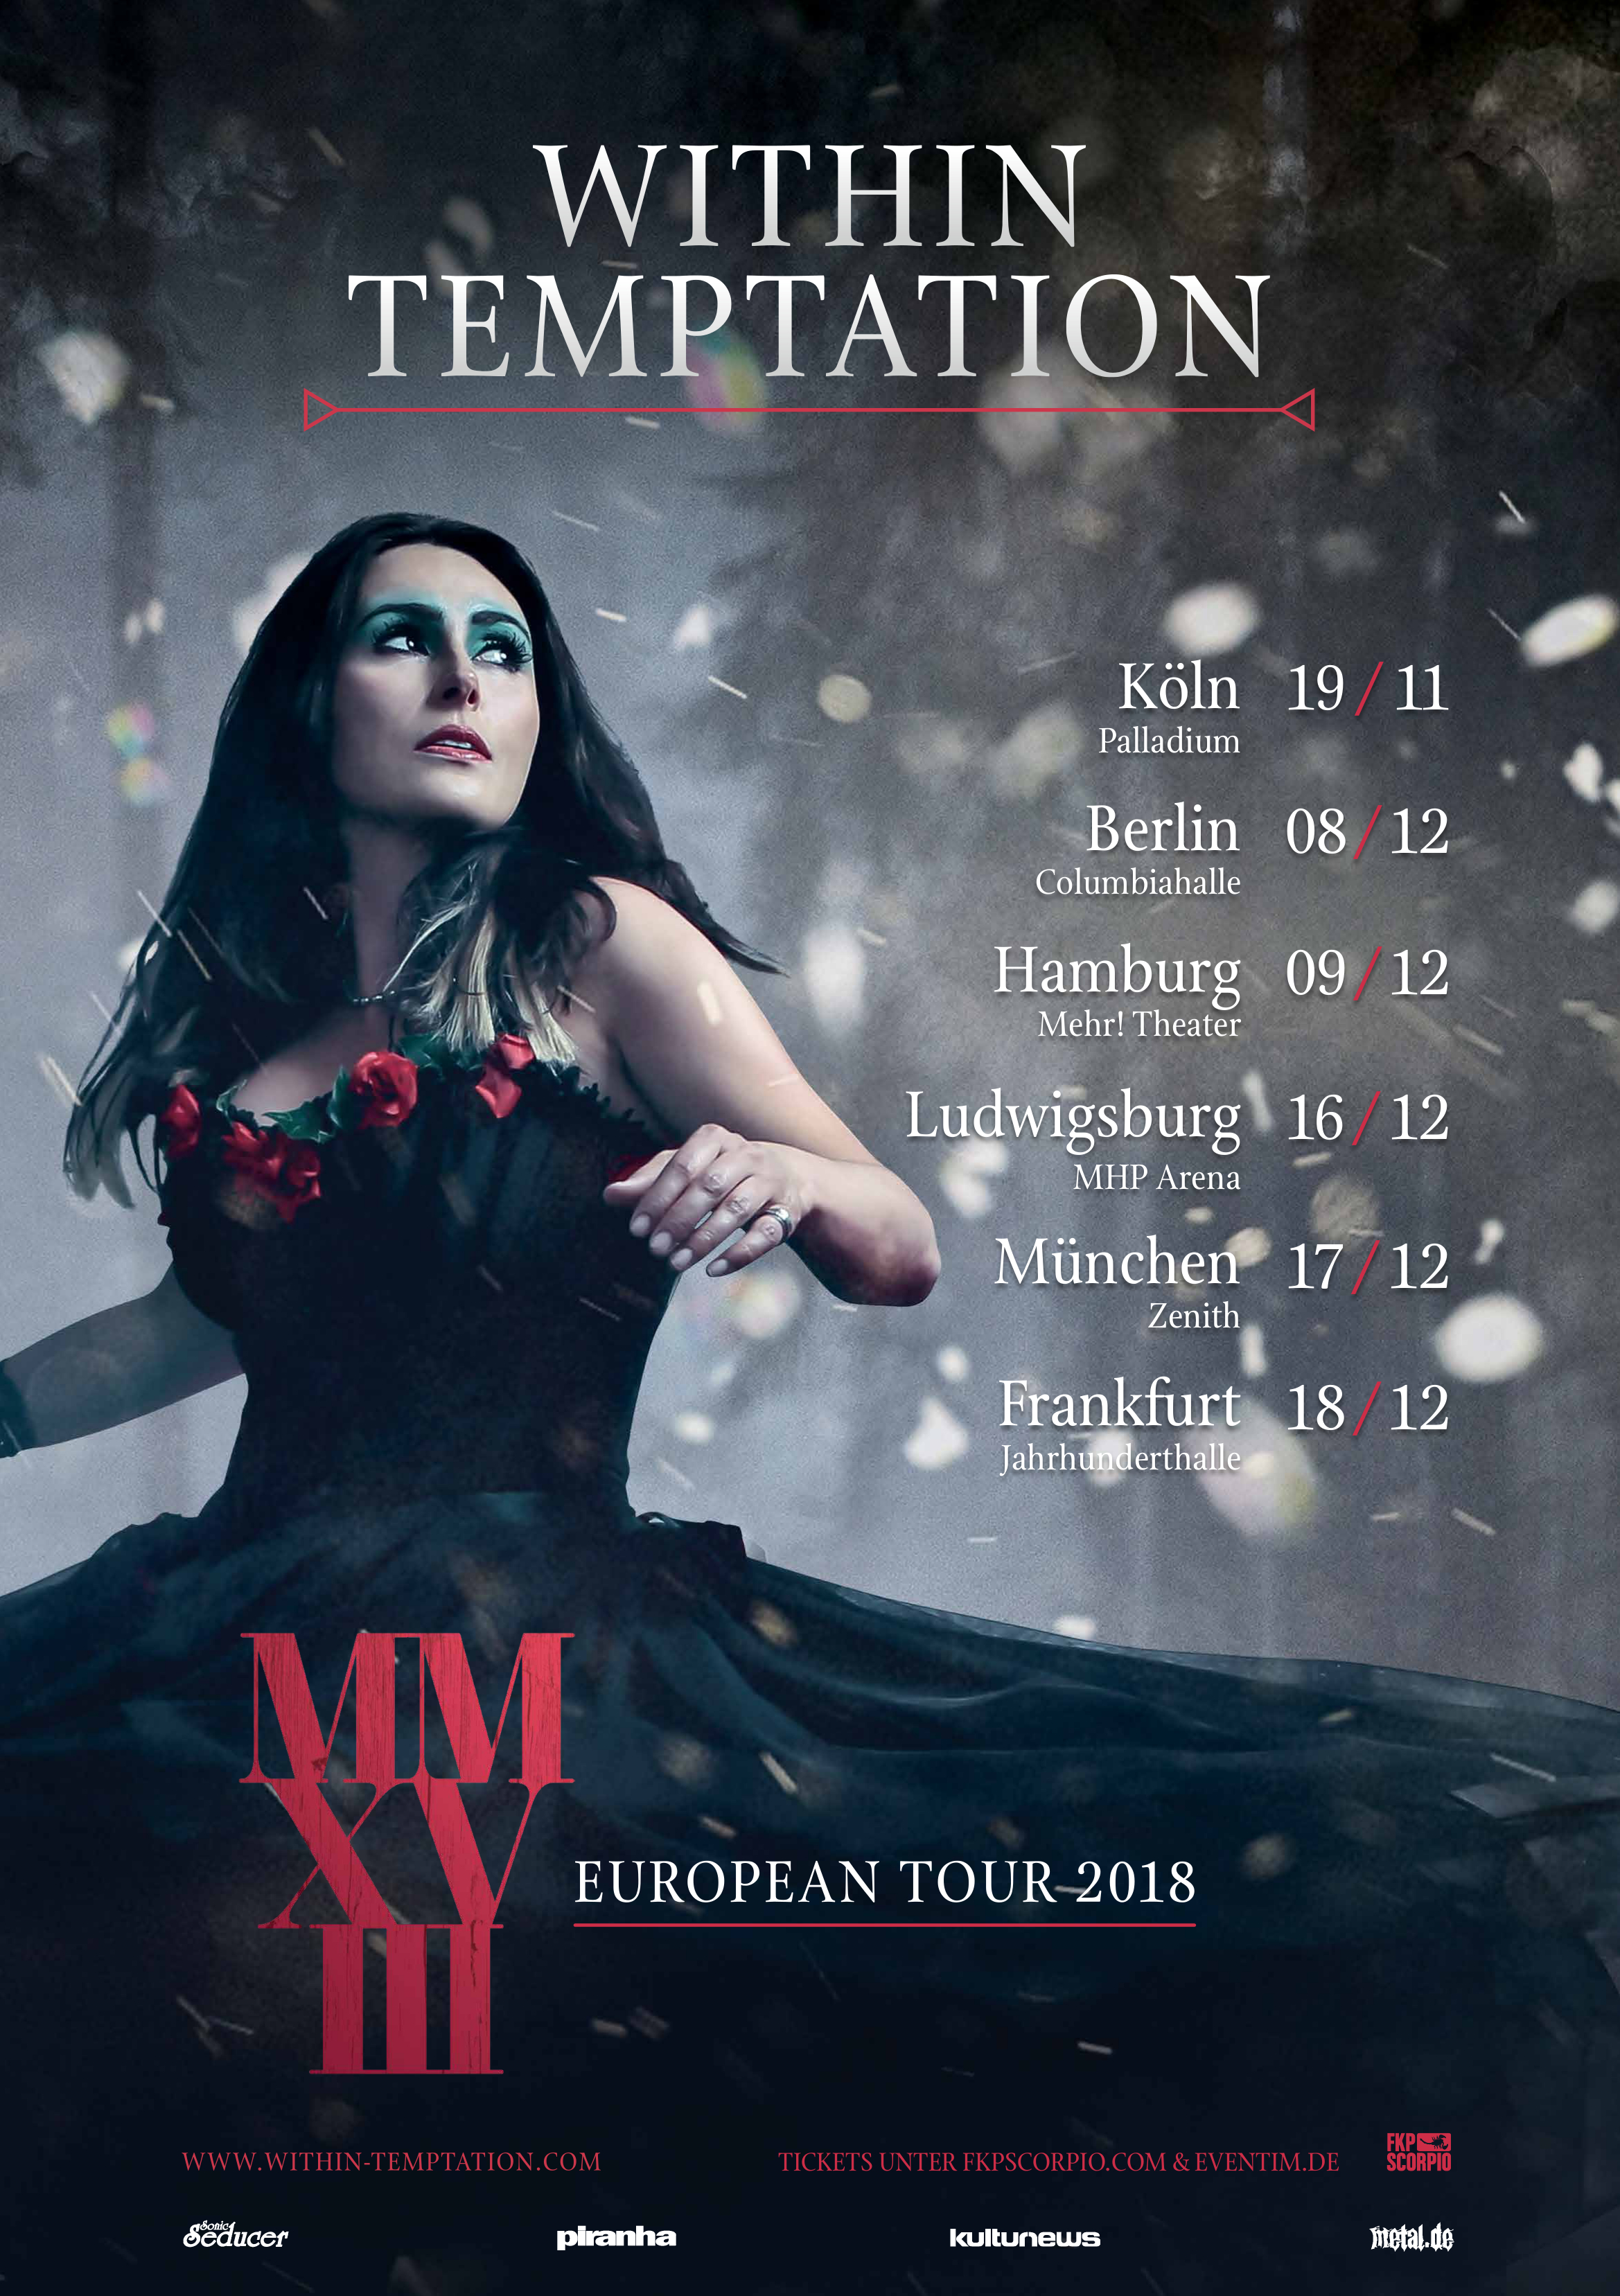 Within Temptation Tour 2018